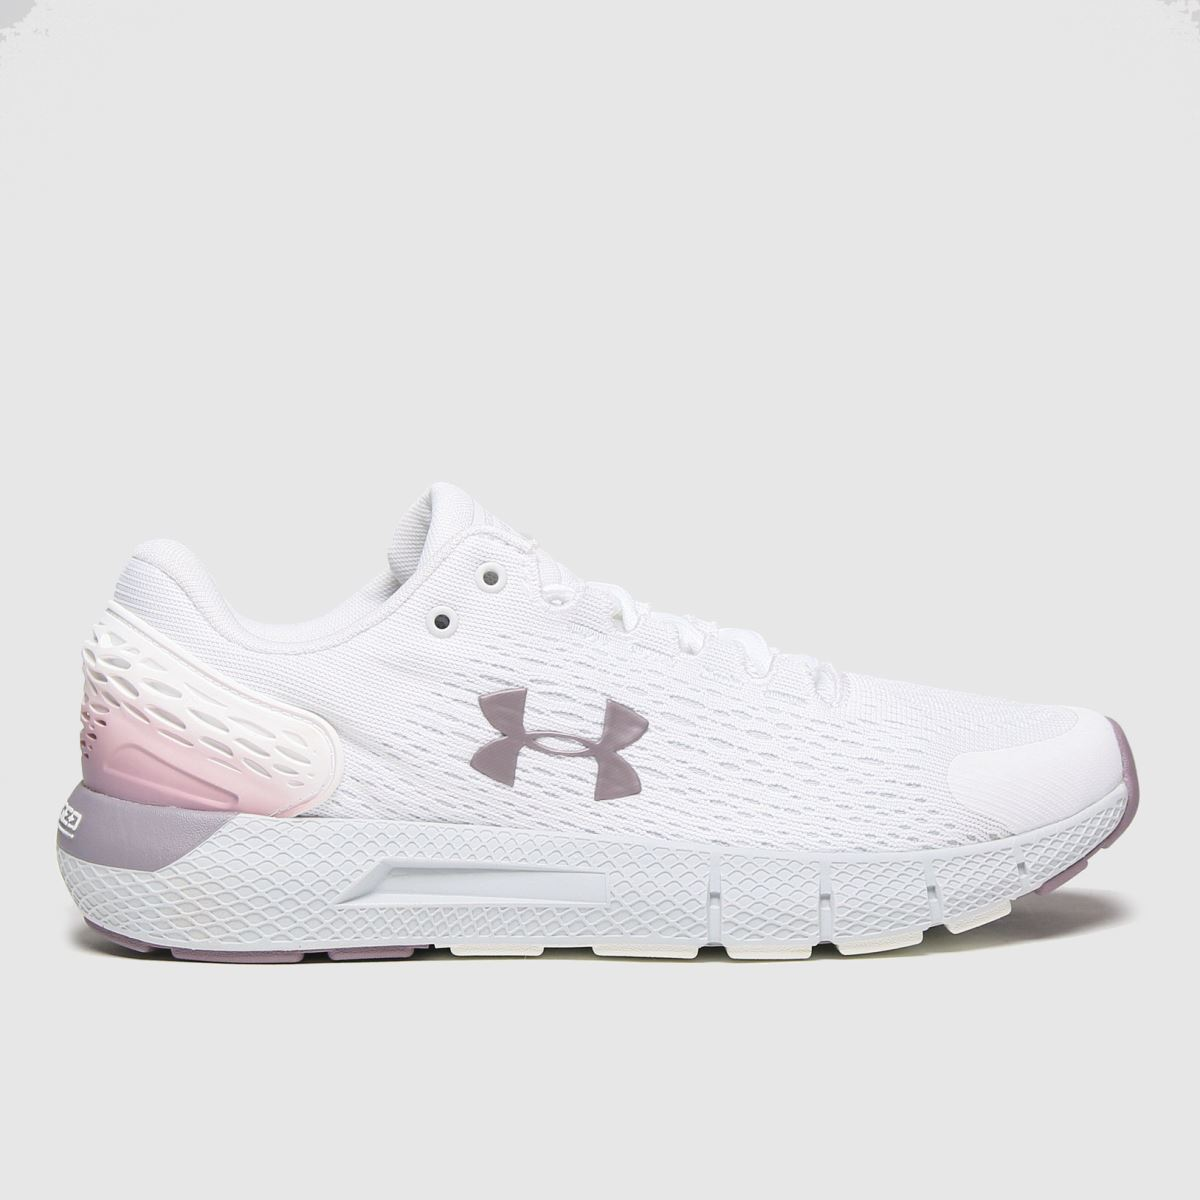 Under Armour White & Grey Charged Rogue 2 Trainers